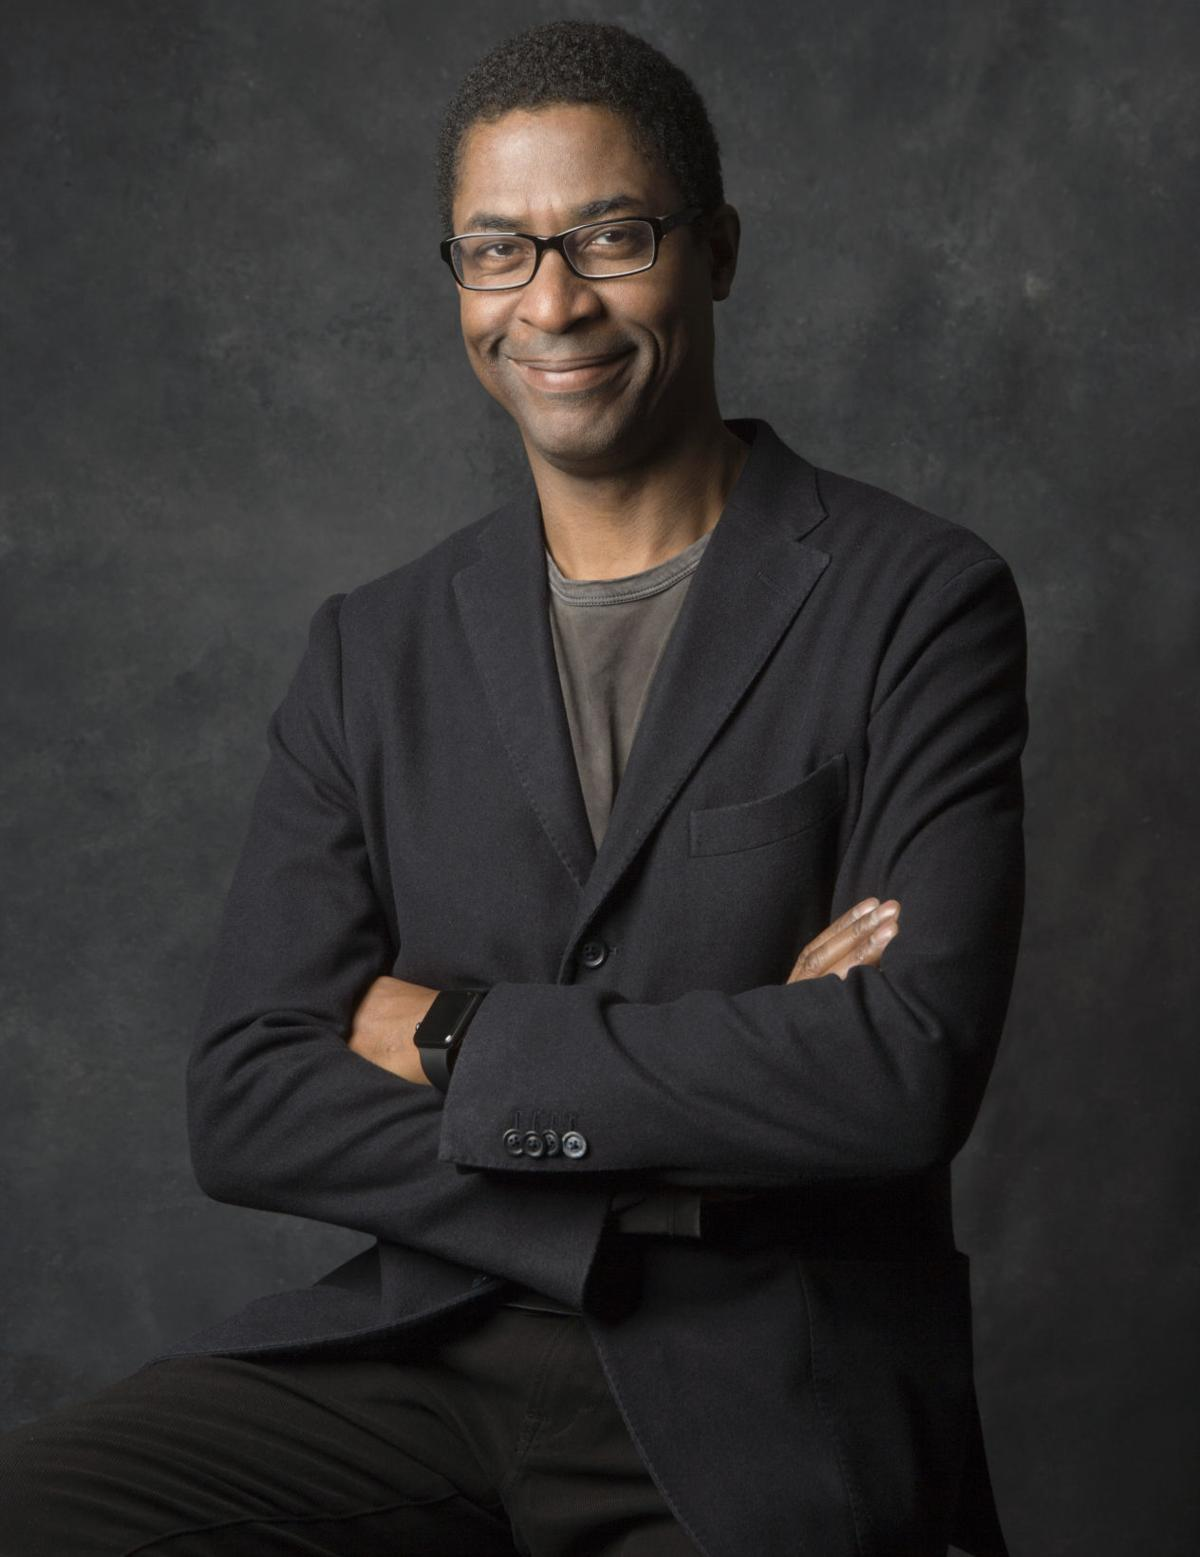 'The Color Purple' composer to perform at Lied | Music ...